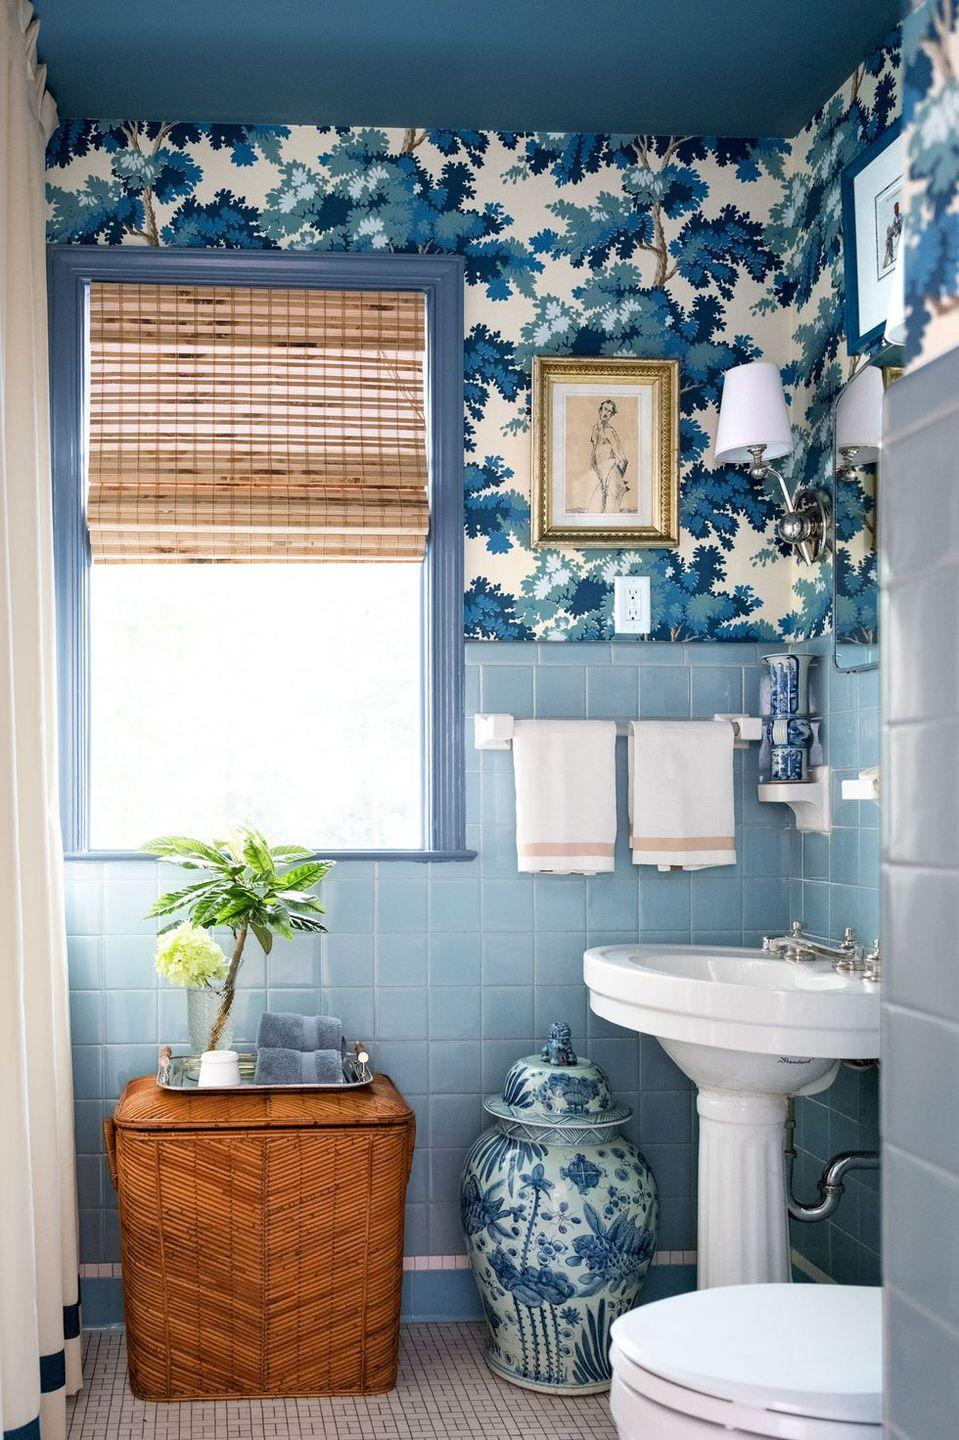 """<p>Don't let tiny rooms deter you from going big. Interior designer <a href=""""http://shaunsmithhome.com/"""" rel=""""nofollow noopener"""" target=""""_blank"""" data-ylk=""""slk:Shaun Smith's"""" class=""""link rapid-noclick-resp"""">Shaun Smith's</a> New Orleans home is a treasure trove of beautiful and clever design solutions. If your bathroom is too small for shelves with a lot of depth, add extra storage by placing a tray over the hamper. Keep your hand towels and florals there to brighten up the room. And most importantly, have fun with color.</p>"""